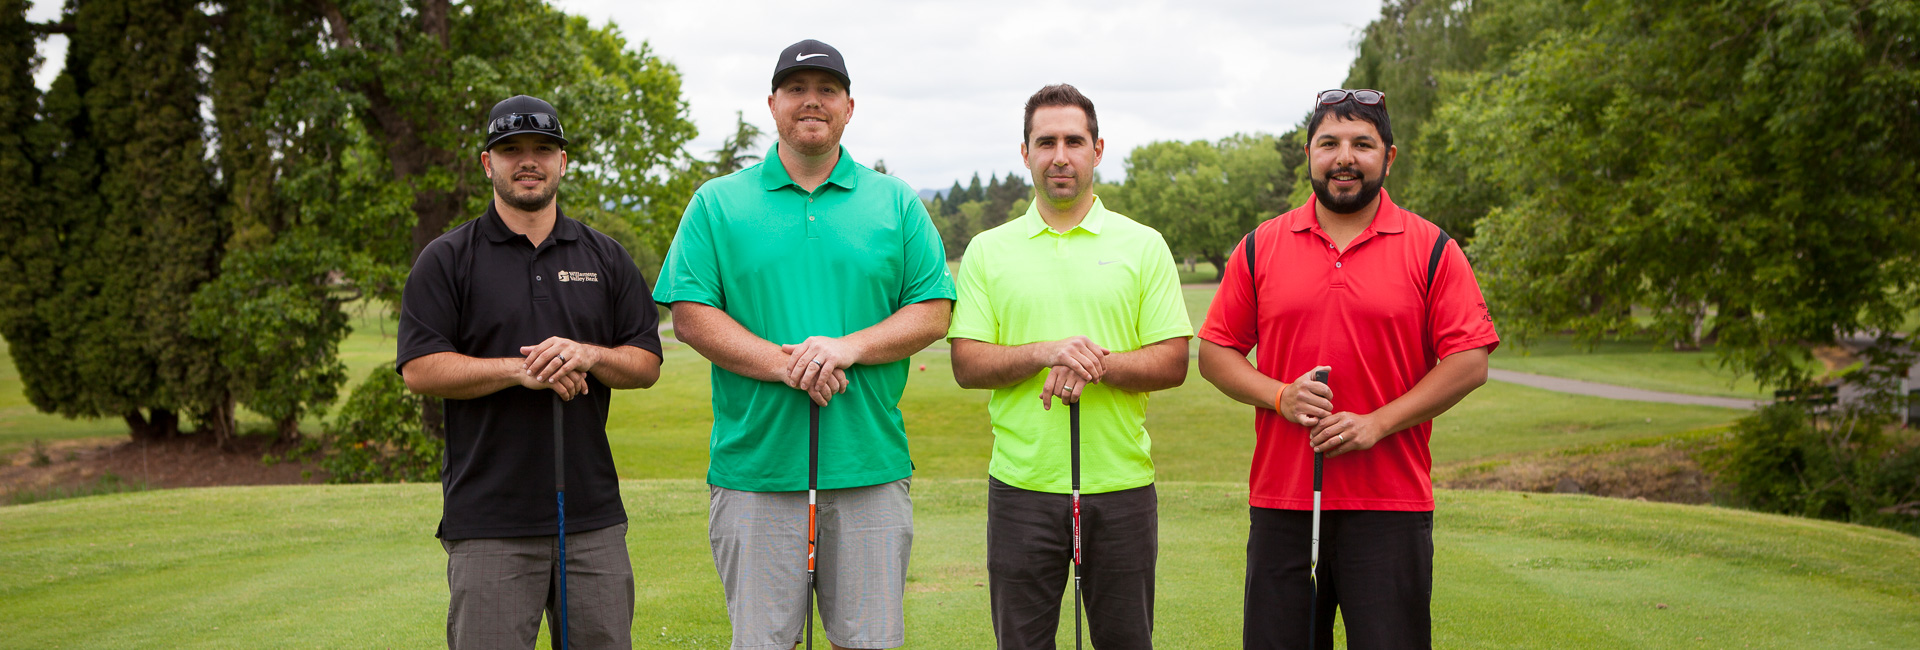 Golf tournament portrait at McNary Golf club in Keizer, Oregon